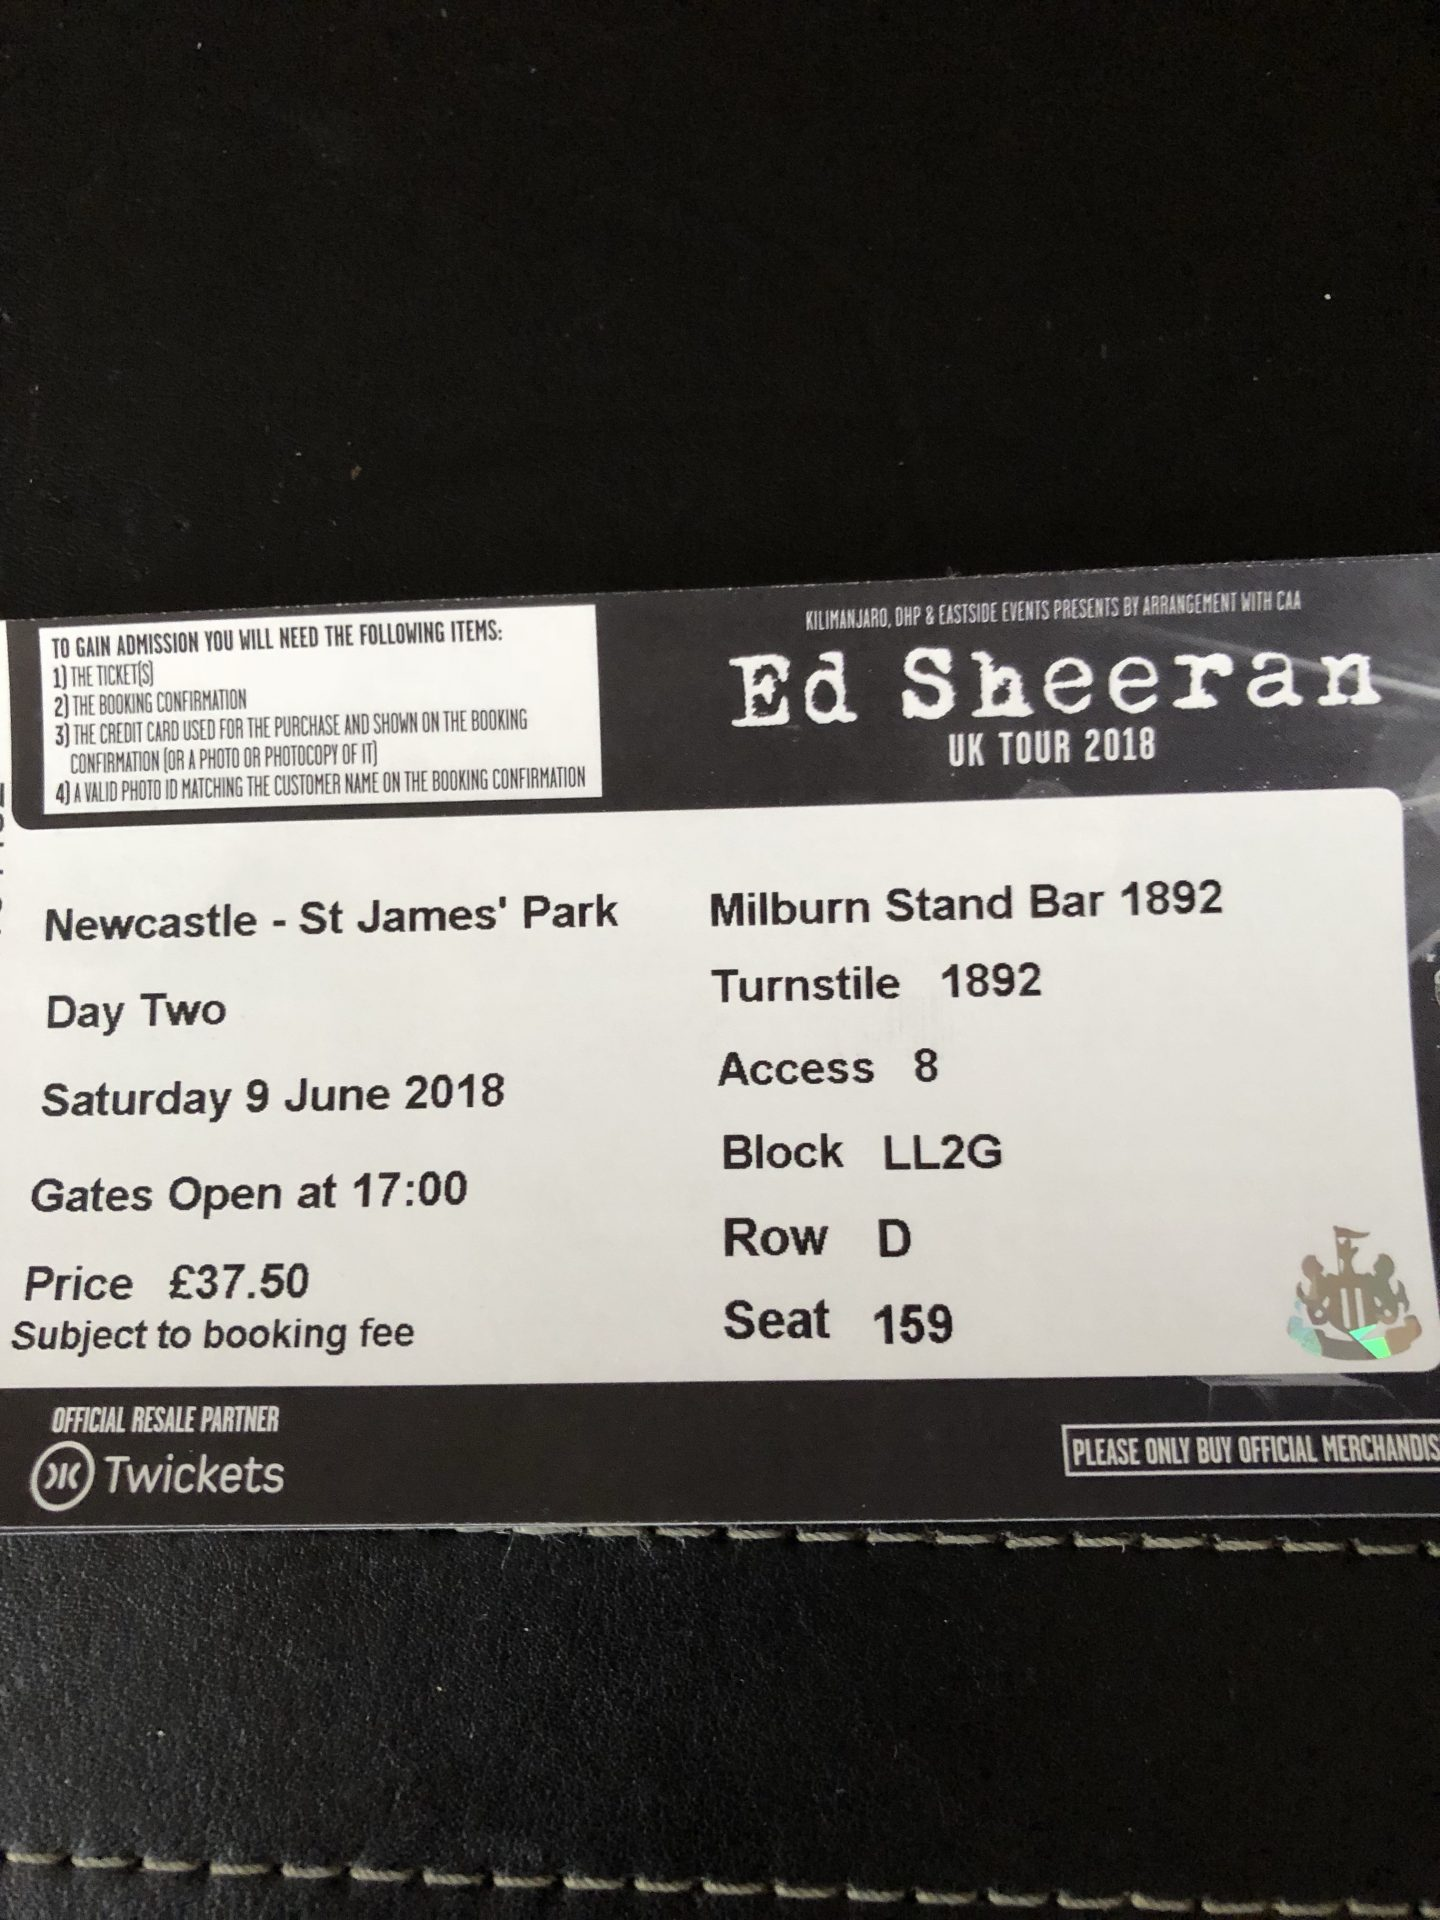 A photo of my Ed Sheeran concert ticket